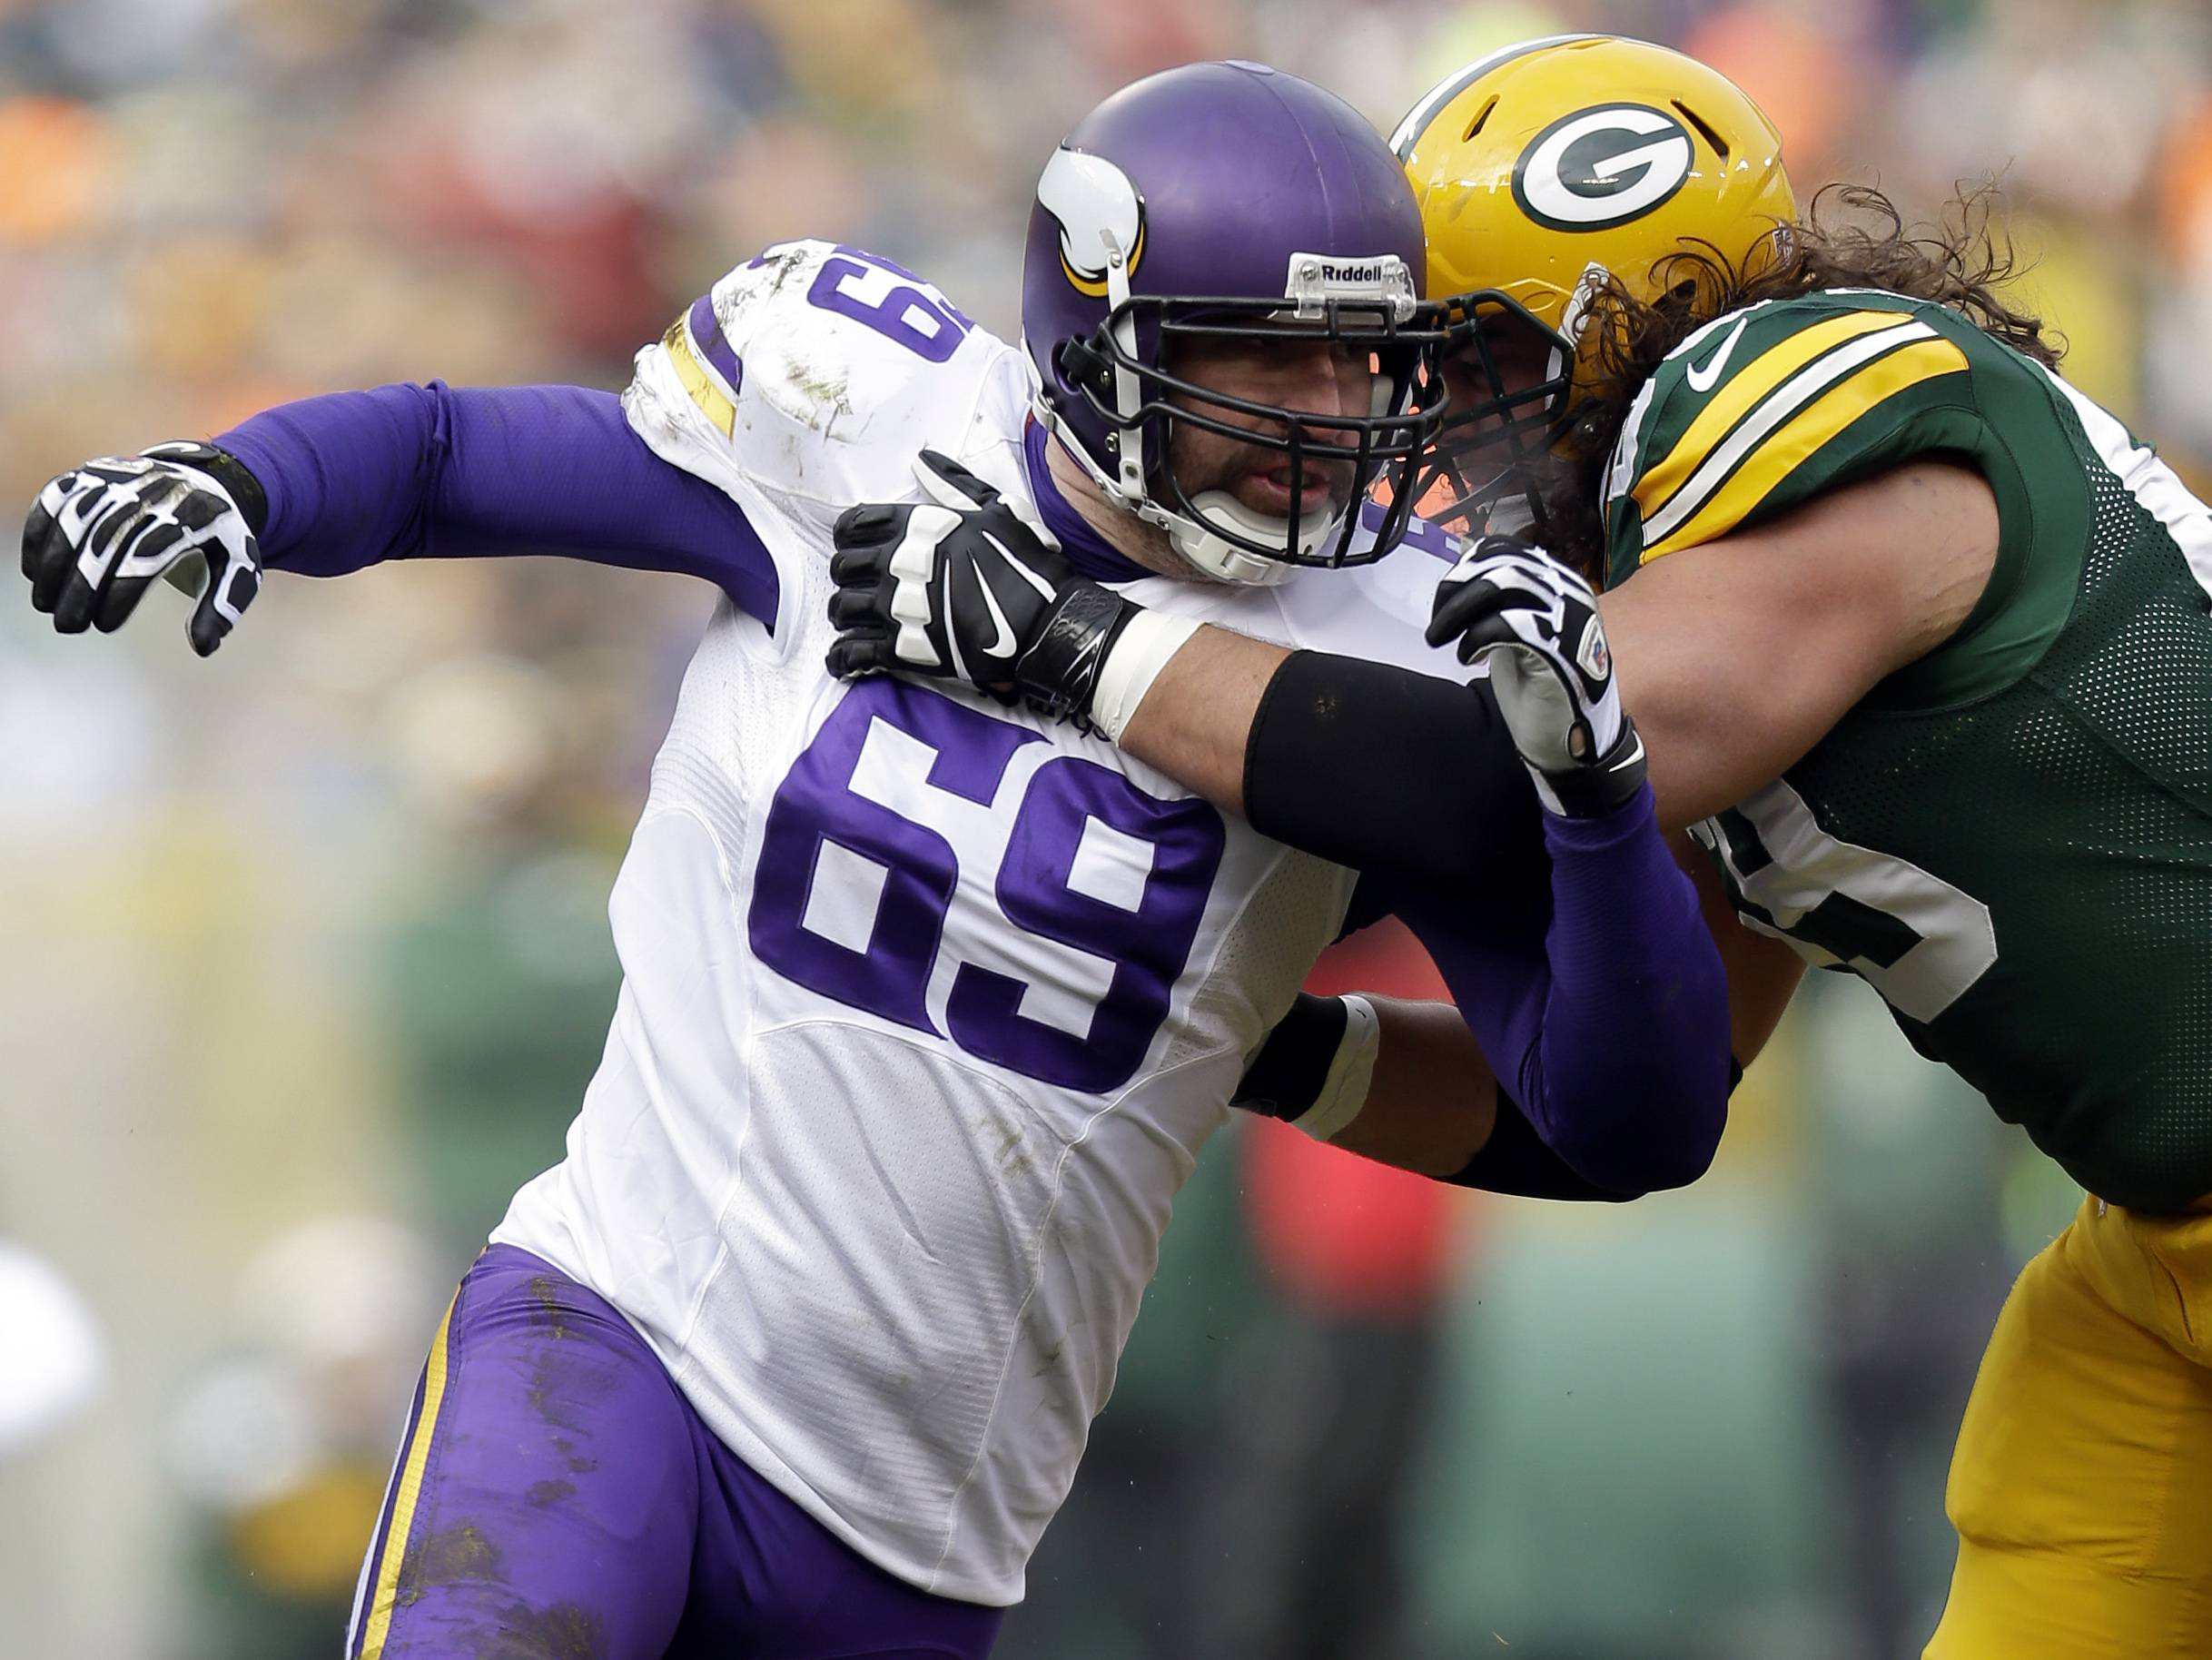 Former Minnesota Vikings defensive end Jared Allen should be a big help to a Bears defense that struggled last season. If the Bears stay healthy, Mike North believes they'll make the playoffs.